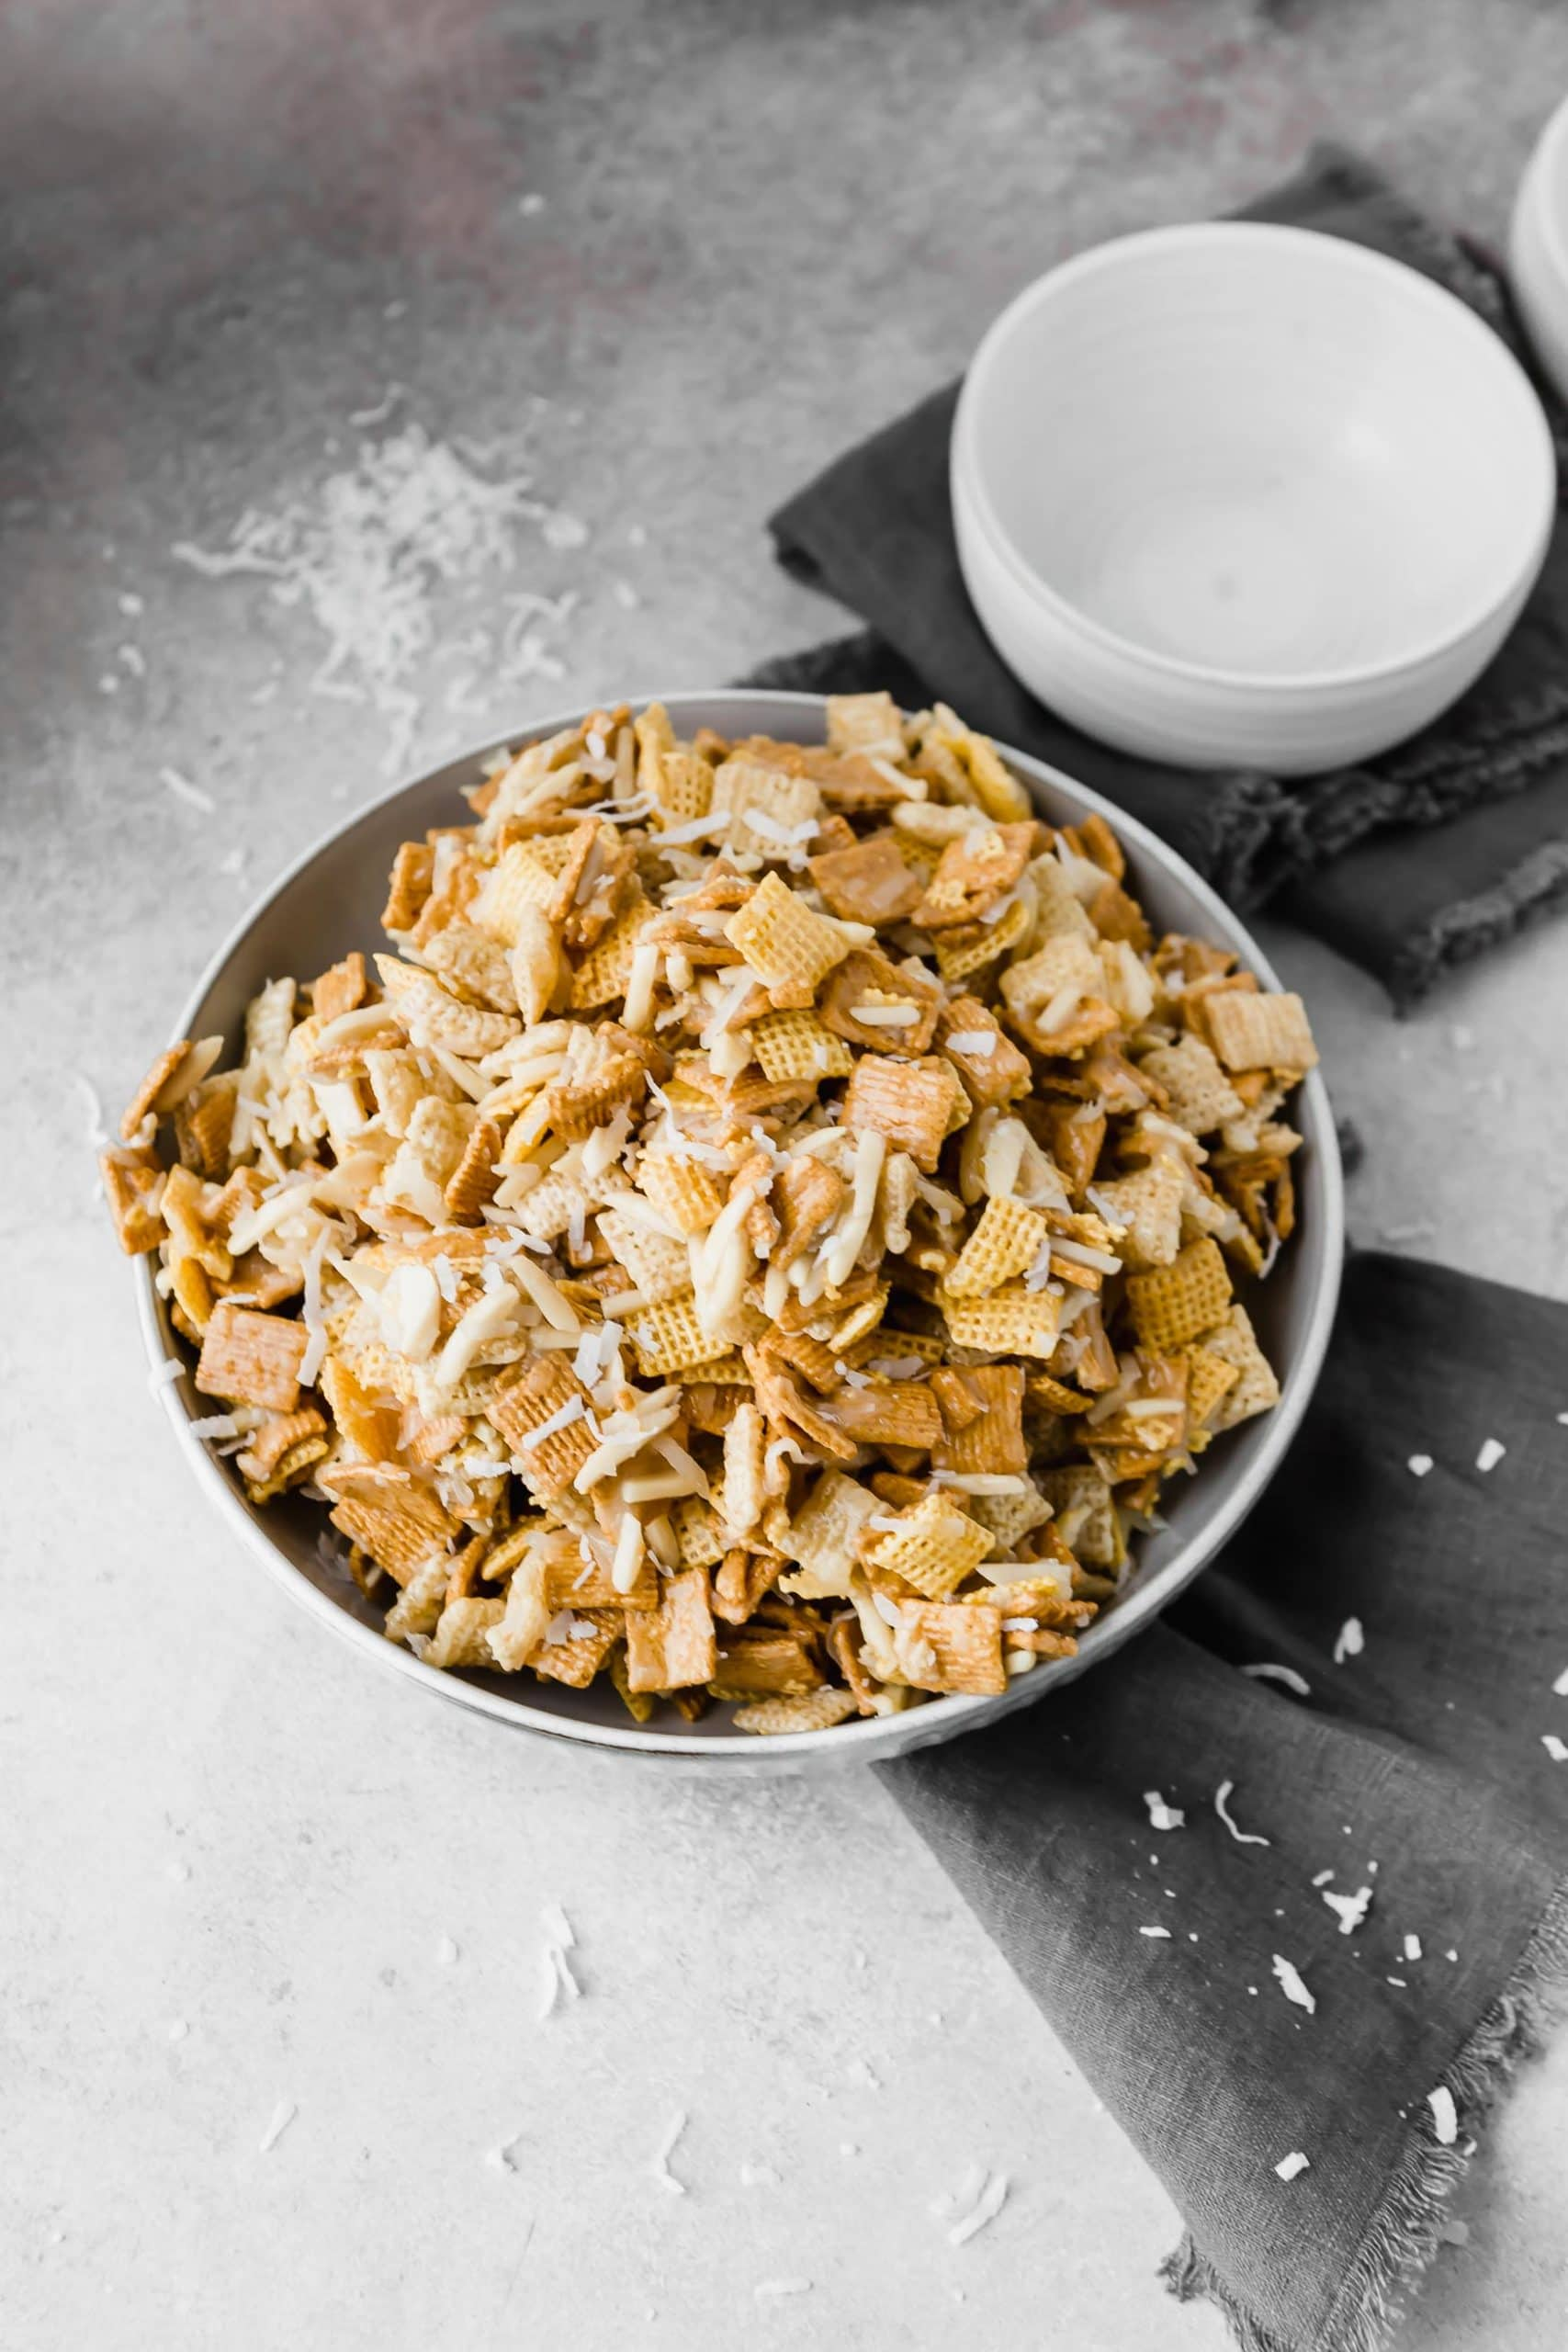 A picture of a large bowl filled with coconut sweet chex mix.